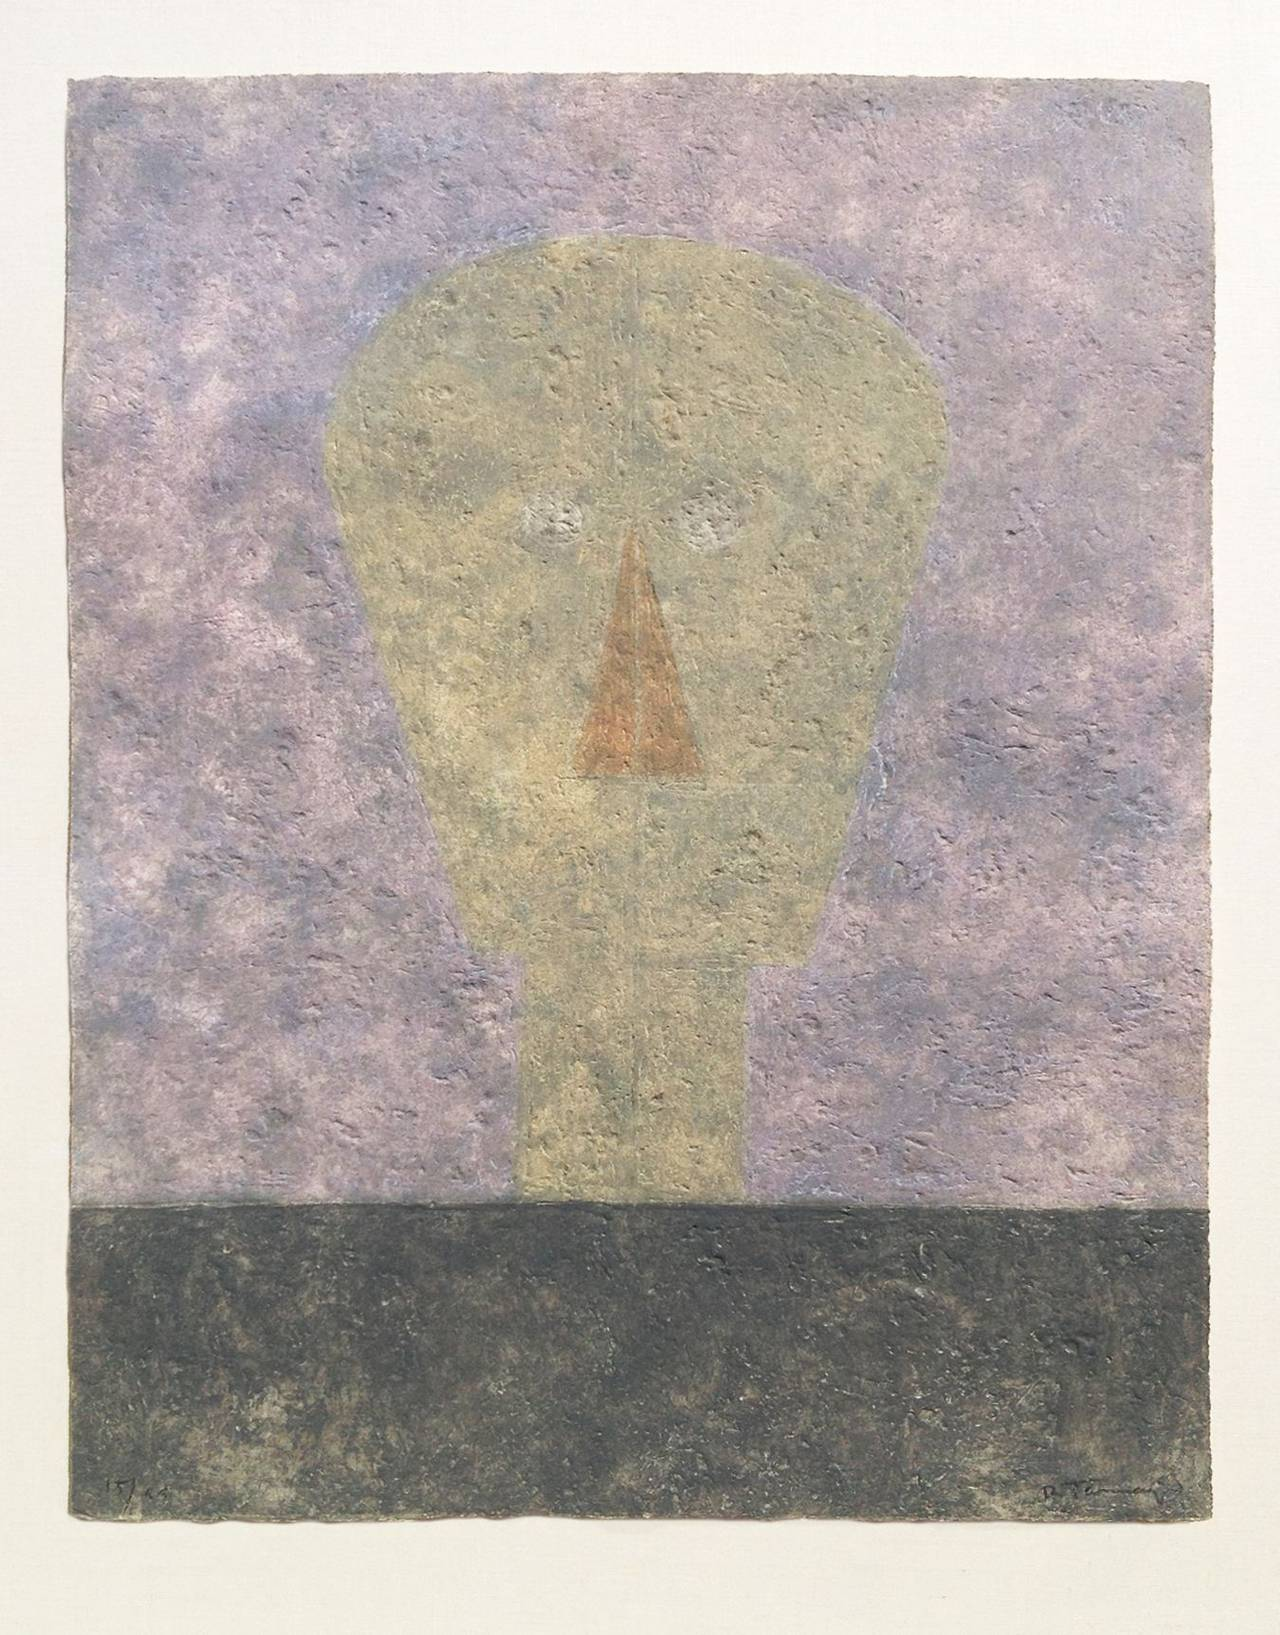 Rufino Tamayo Print - Cabeza Sobre Fondo Rosa (Head on Pink Background)